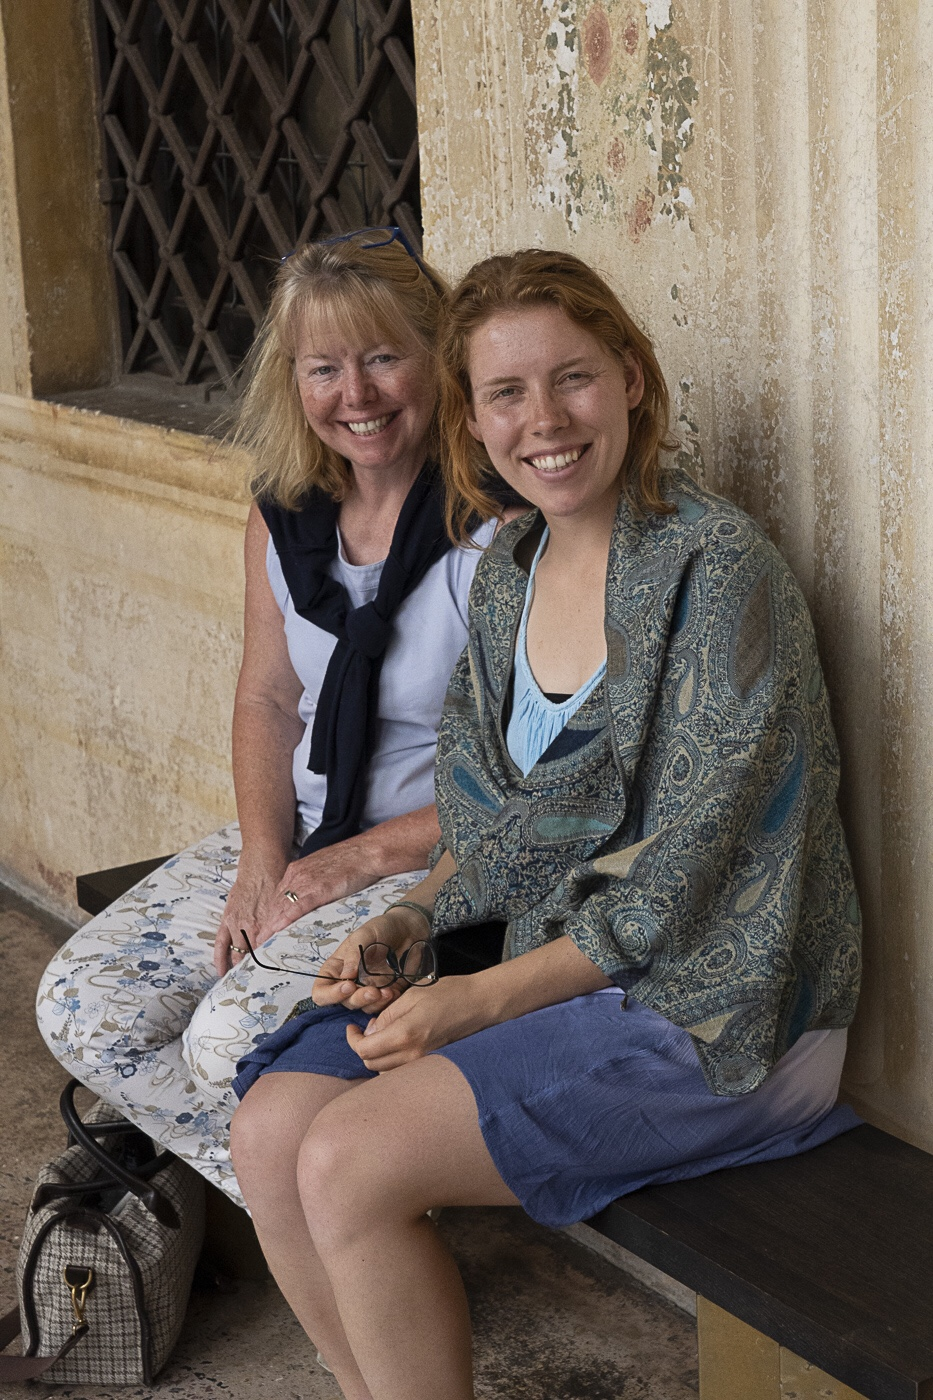 Visiting Villa Emo - September, 2019 - Janet and Lulu Simmonds appreciate the frescoed portico. Visiting with our friend Nicole Friedler. www.nicolefriedler.com